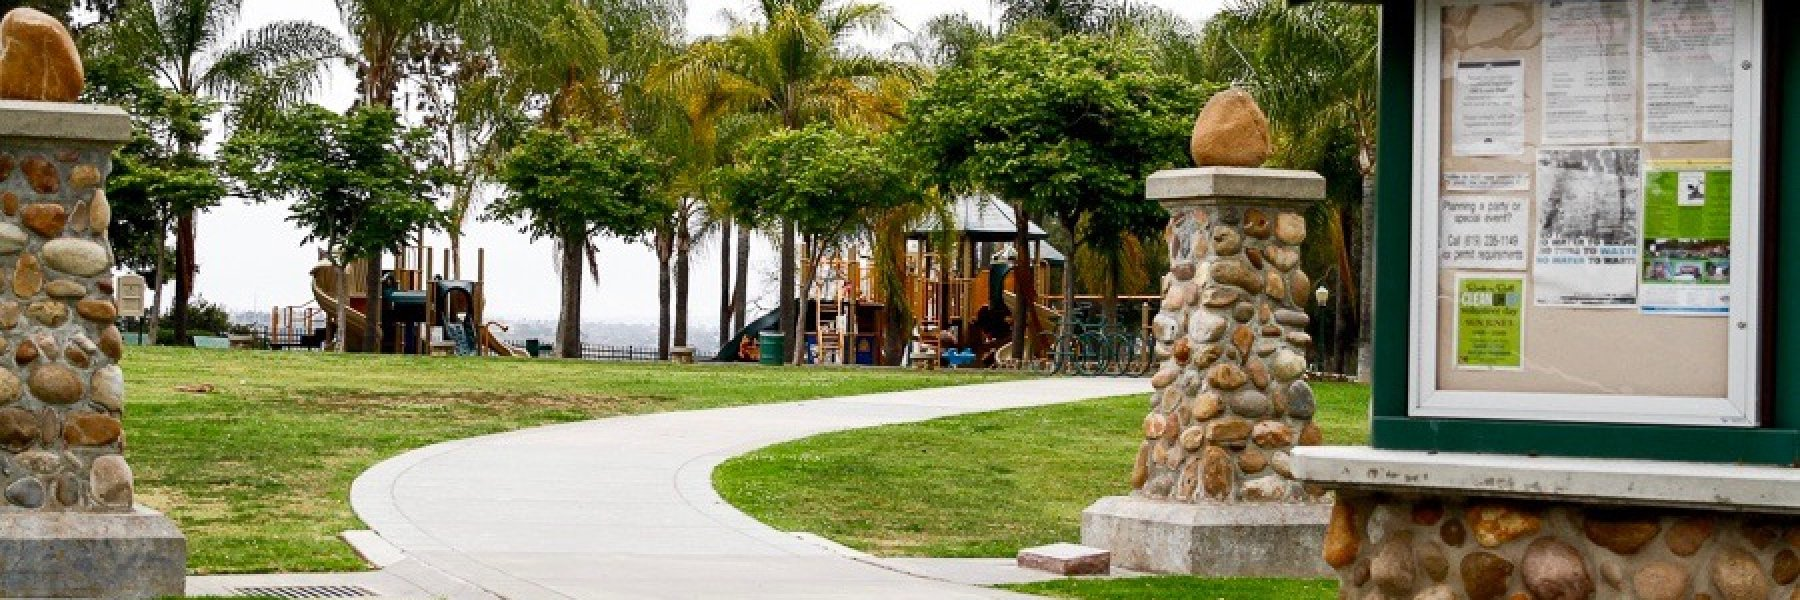 University Heights is a community of homes in San Diego California